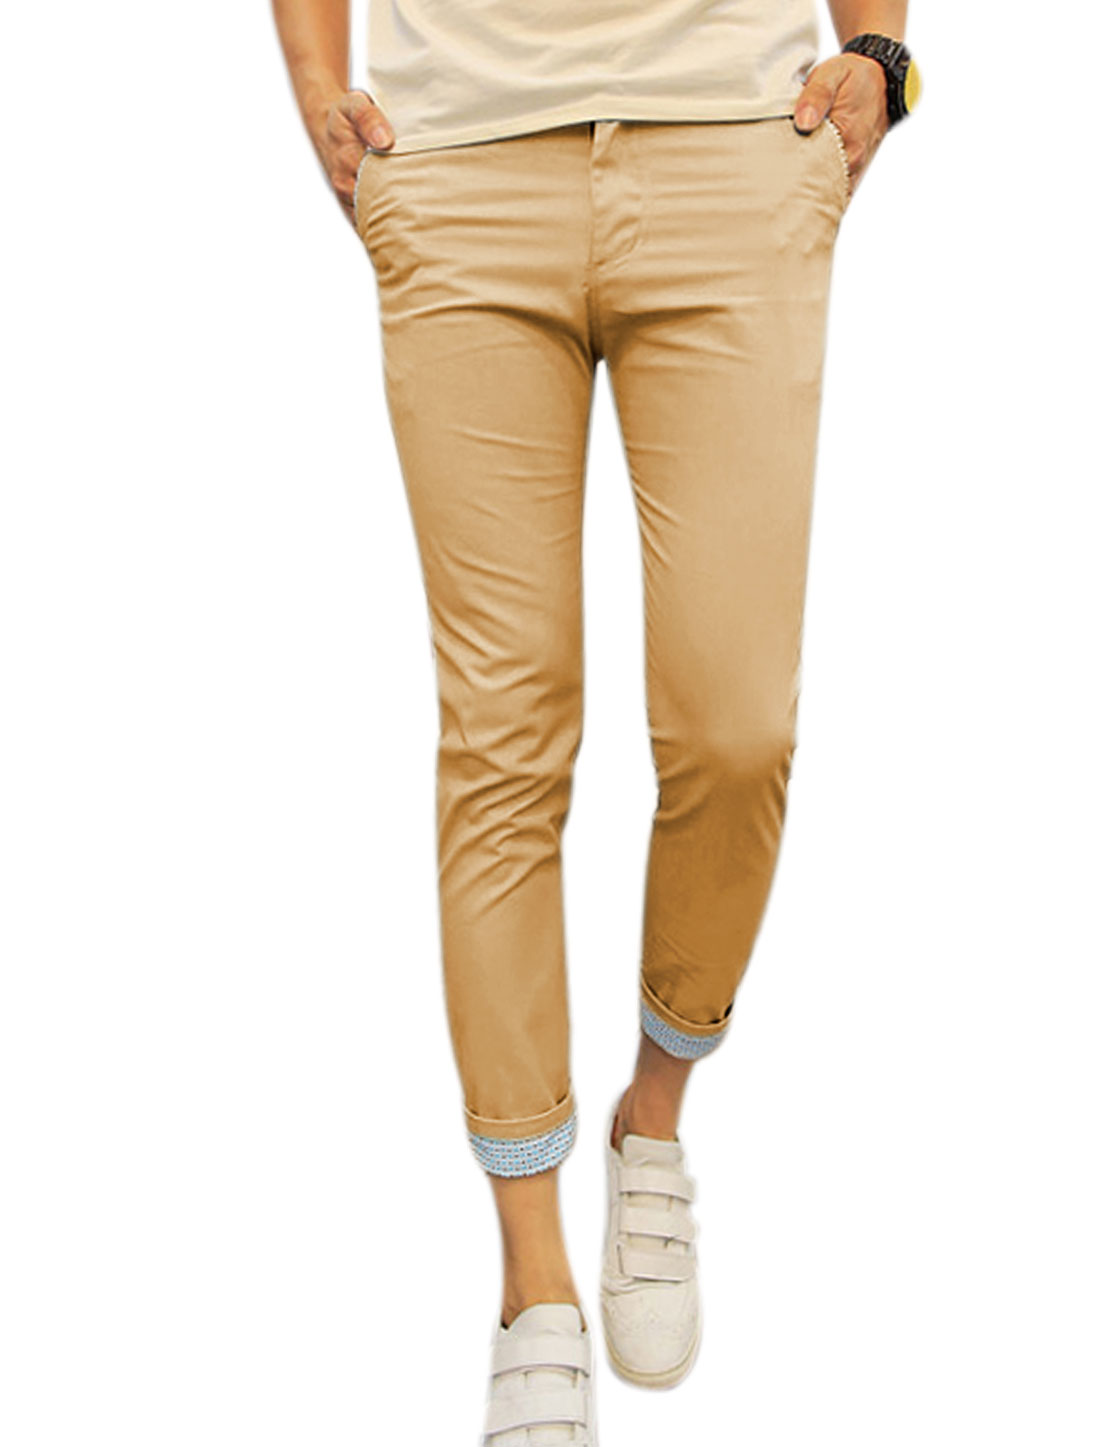 Men Mid Rise Zip Fly Pockets Slim Fit Cropped Trousers Khakis W28